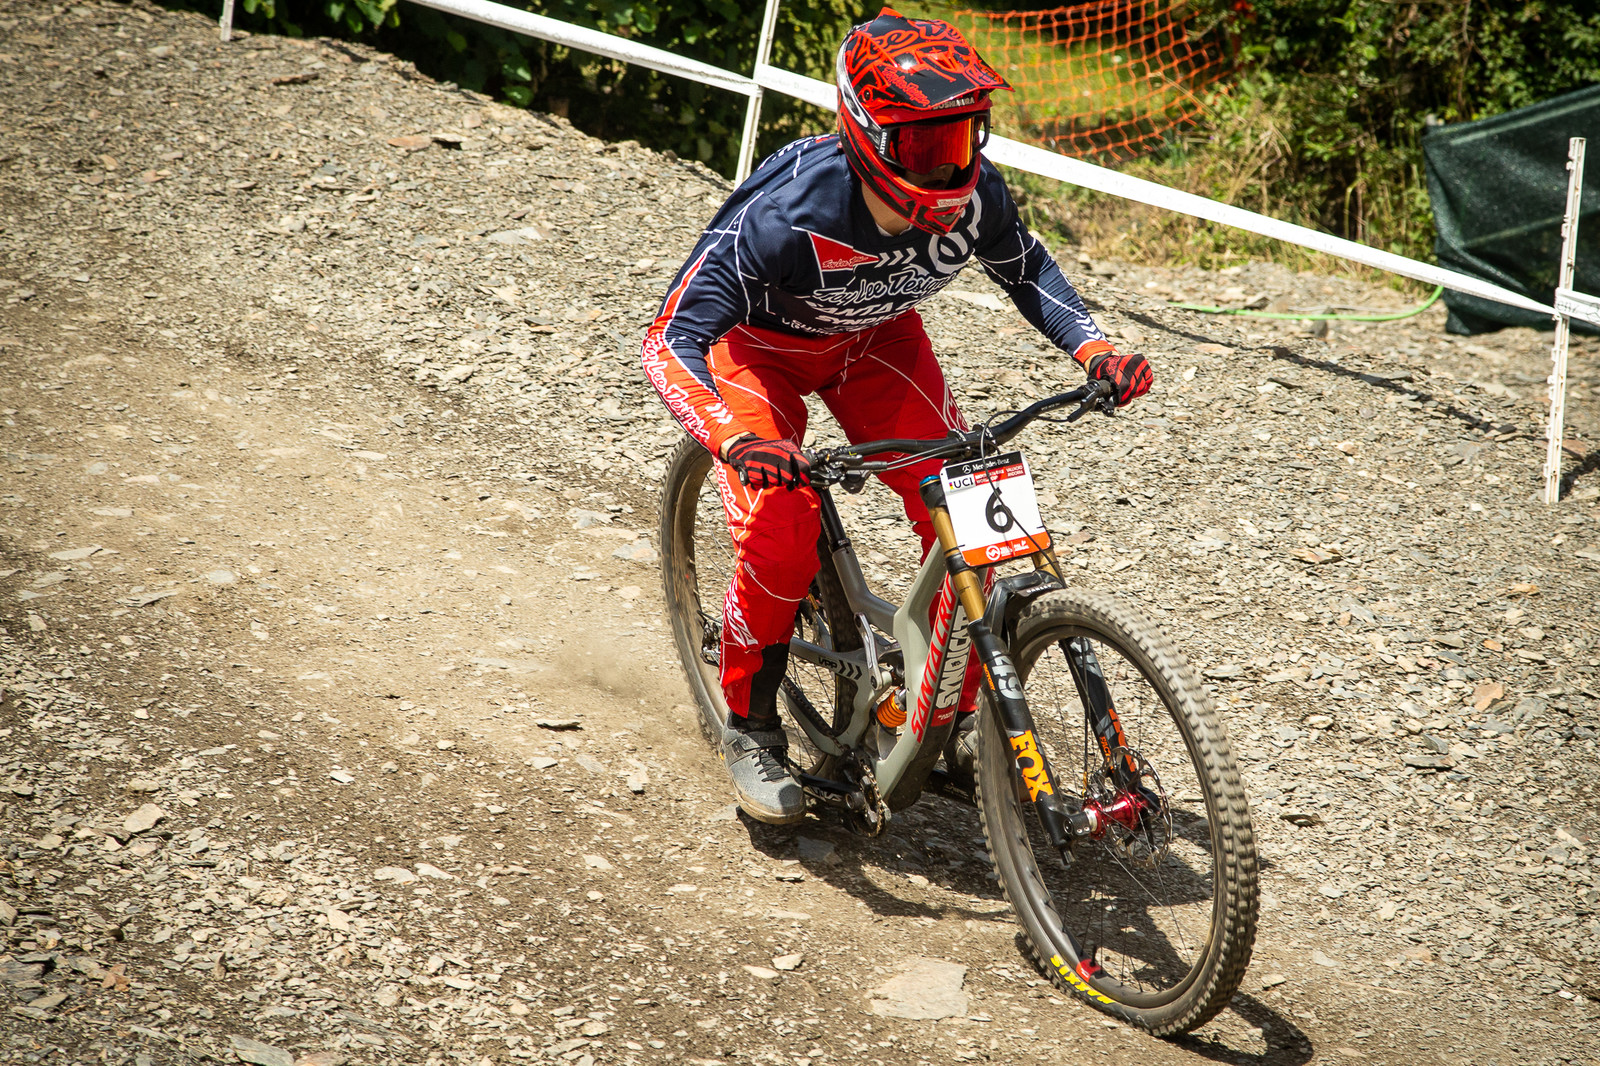 Luca Shaw Santa Cruz V10 - G-Out Project - Andorra World Cup DH - Mountain Biking Pictures - Vital MTB